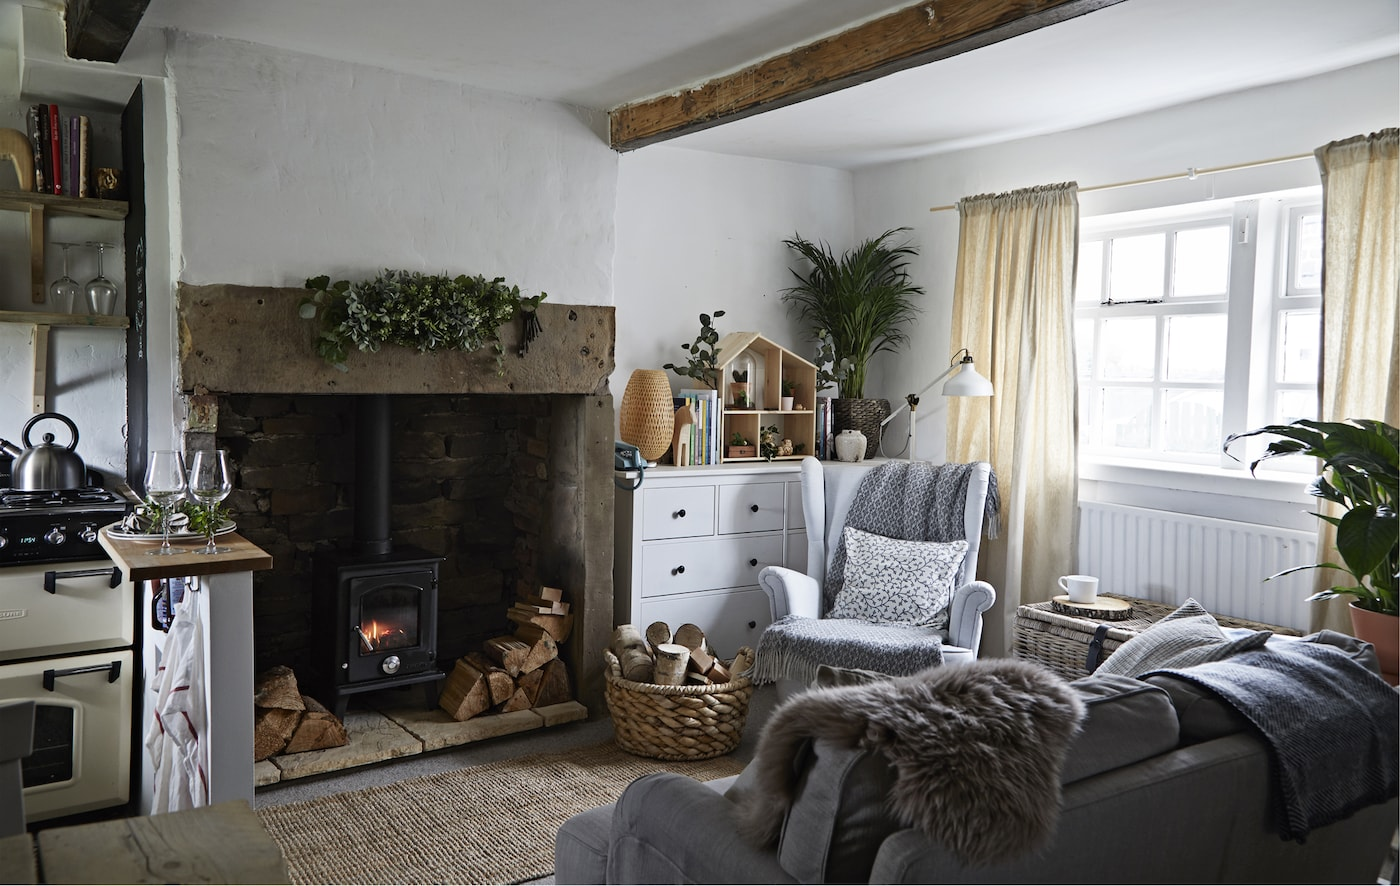 Tour a little home in the country - IKEA